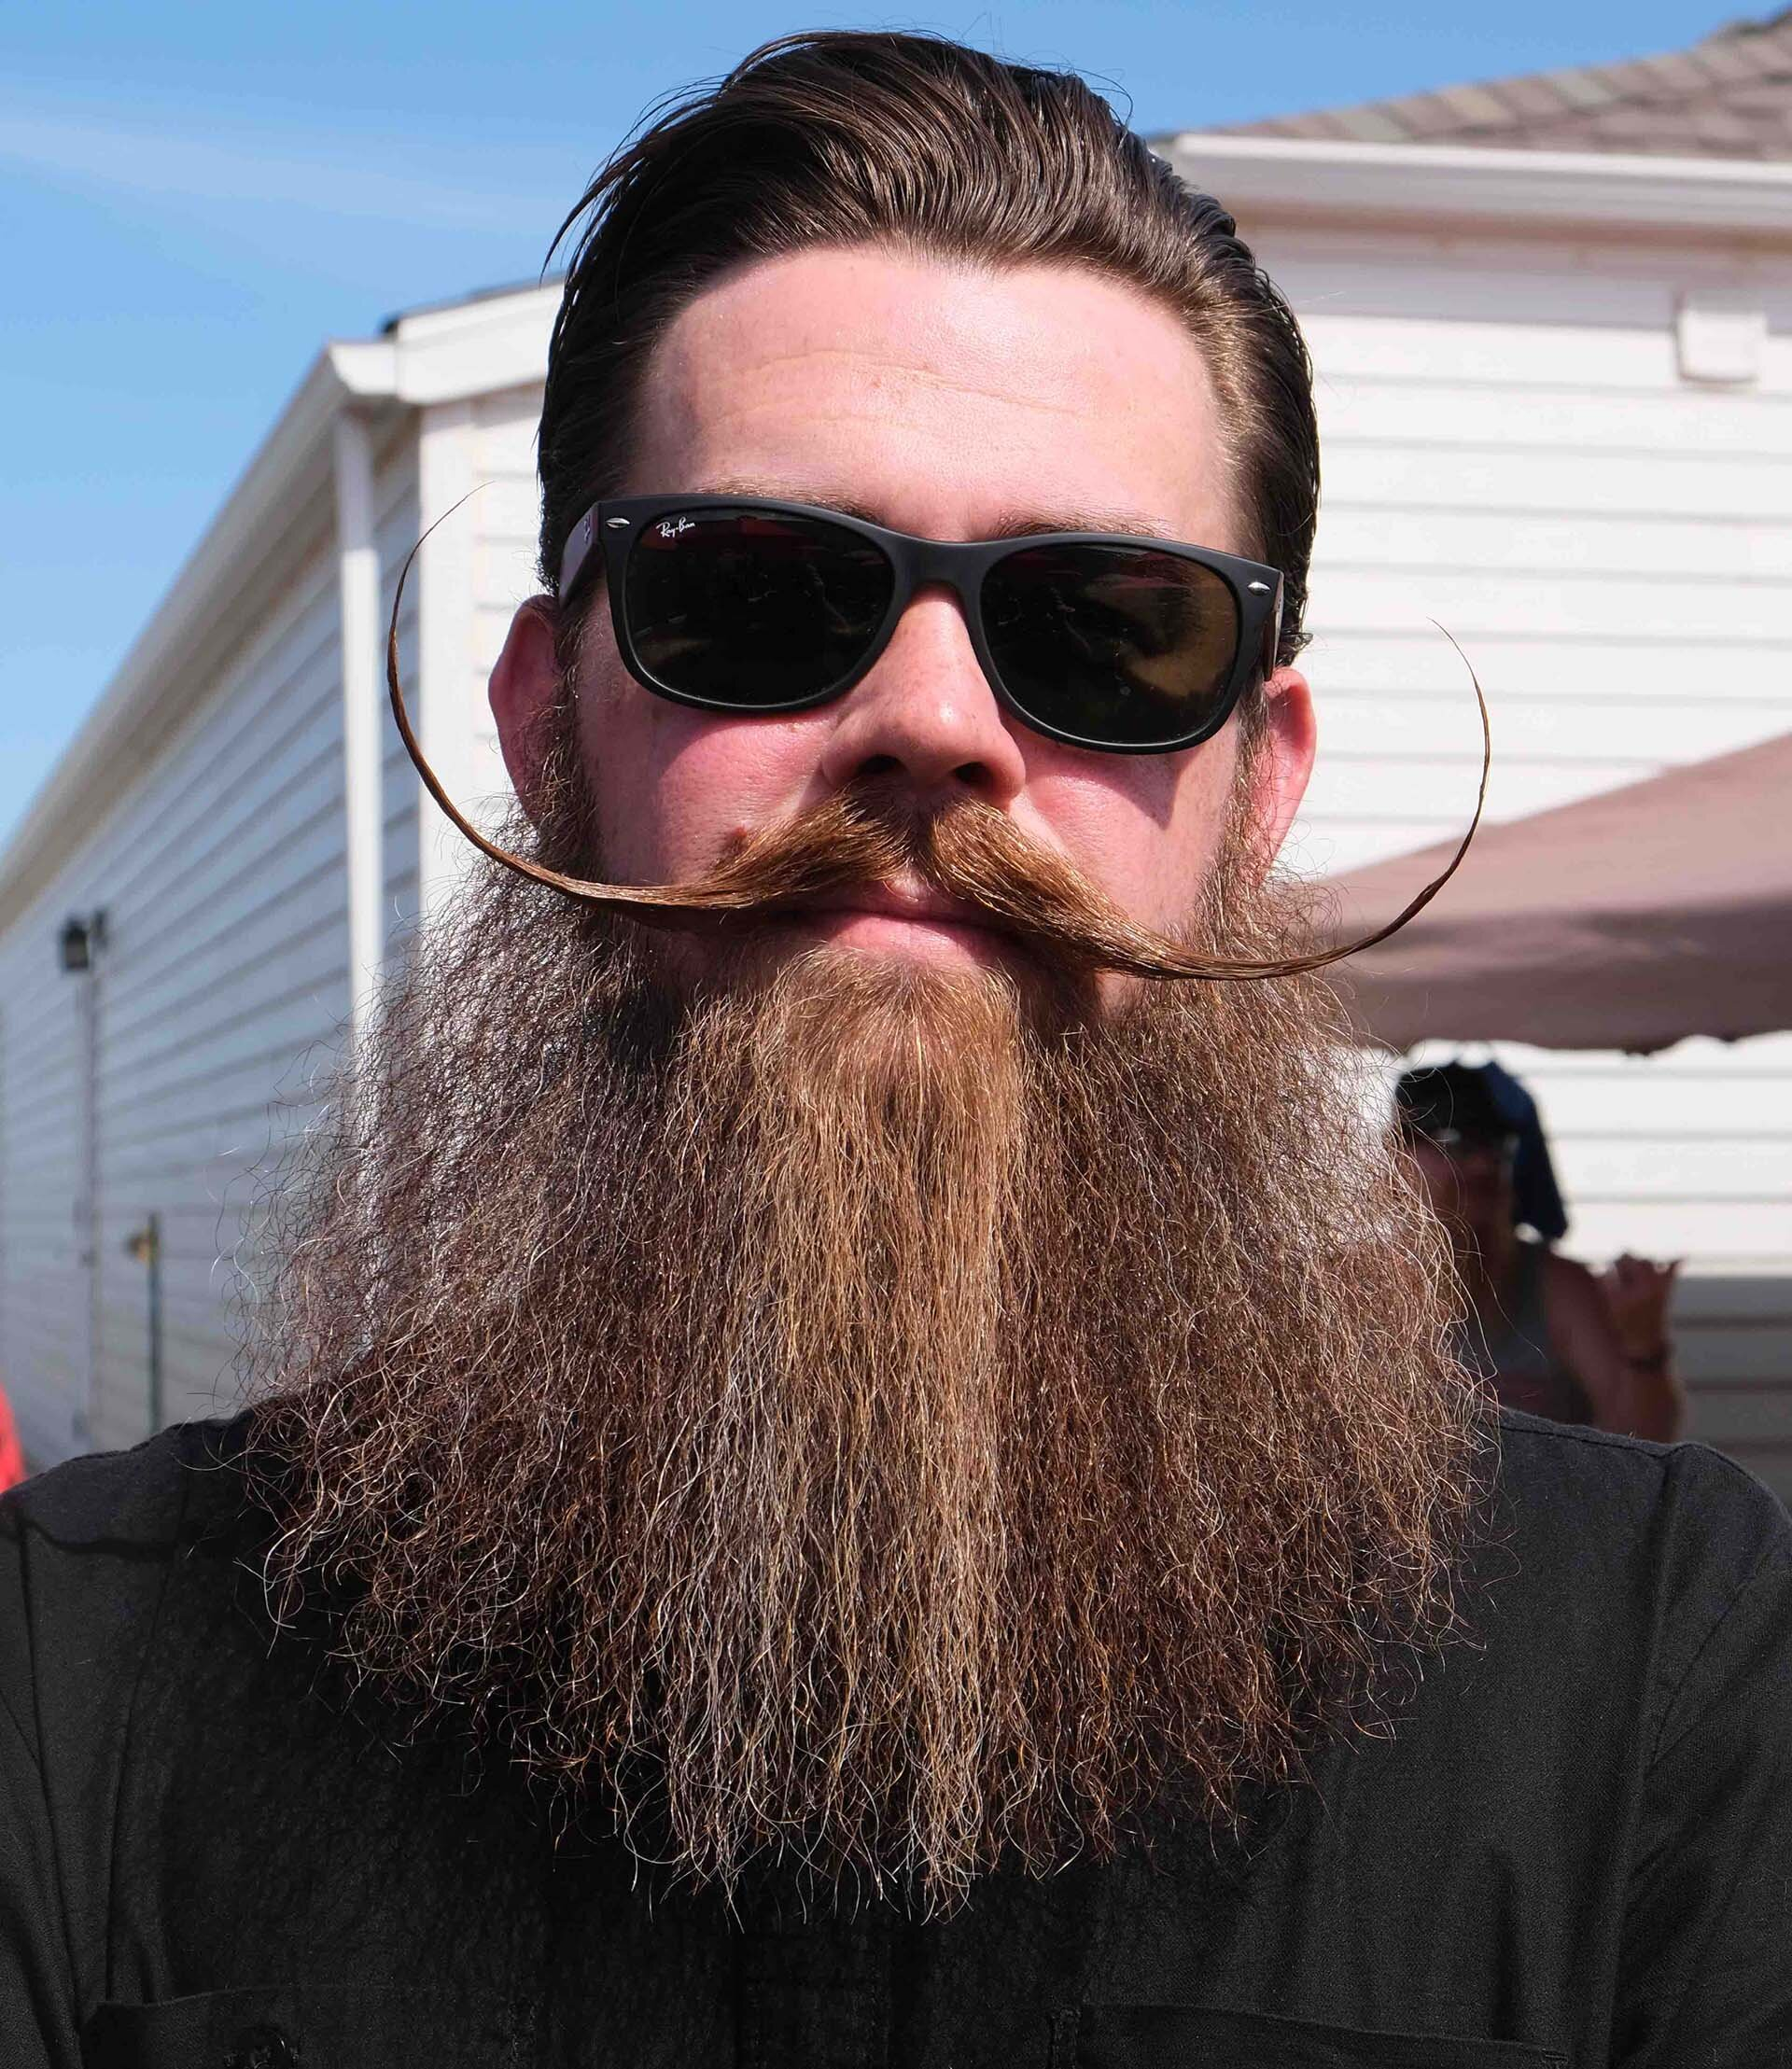 """Nicest Handwriting in Bearding"" - Name: Mike WilsonHometown: Minneapolis, MNOccupation: I.T. RecruiterClub and/or Product Affiliation: Minnesota Beard & Moustache CoalitionHow long have you been bearding? 4 yearsHave you won any awards? Yes, top honor is 2nd place @ 2018 GABMC, Full Beard Styled 'Stache.Why do you do it and/or what is your favorite thing about it?I do it for the camaraderie, for the charity, and for the family I've found. My favorite part is seeing my bearded brethren at comps and seeing the look on the charities' faces when they see the turnout."